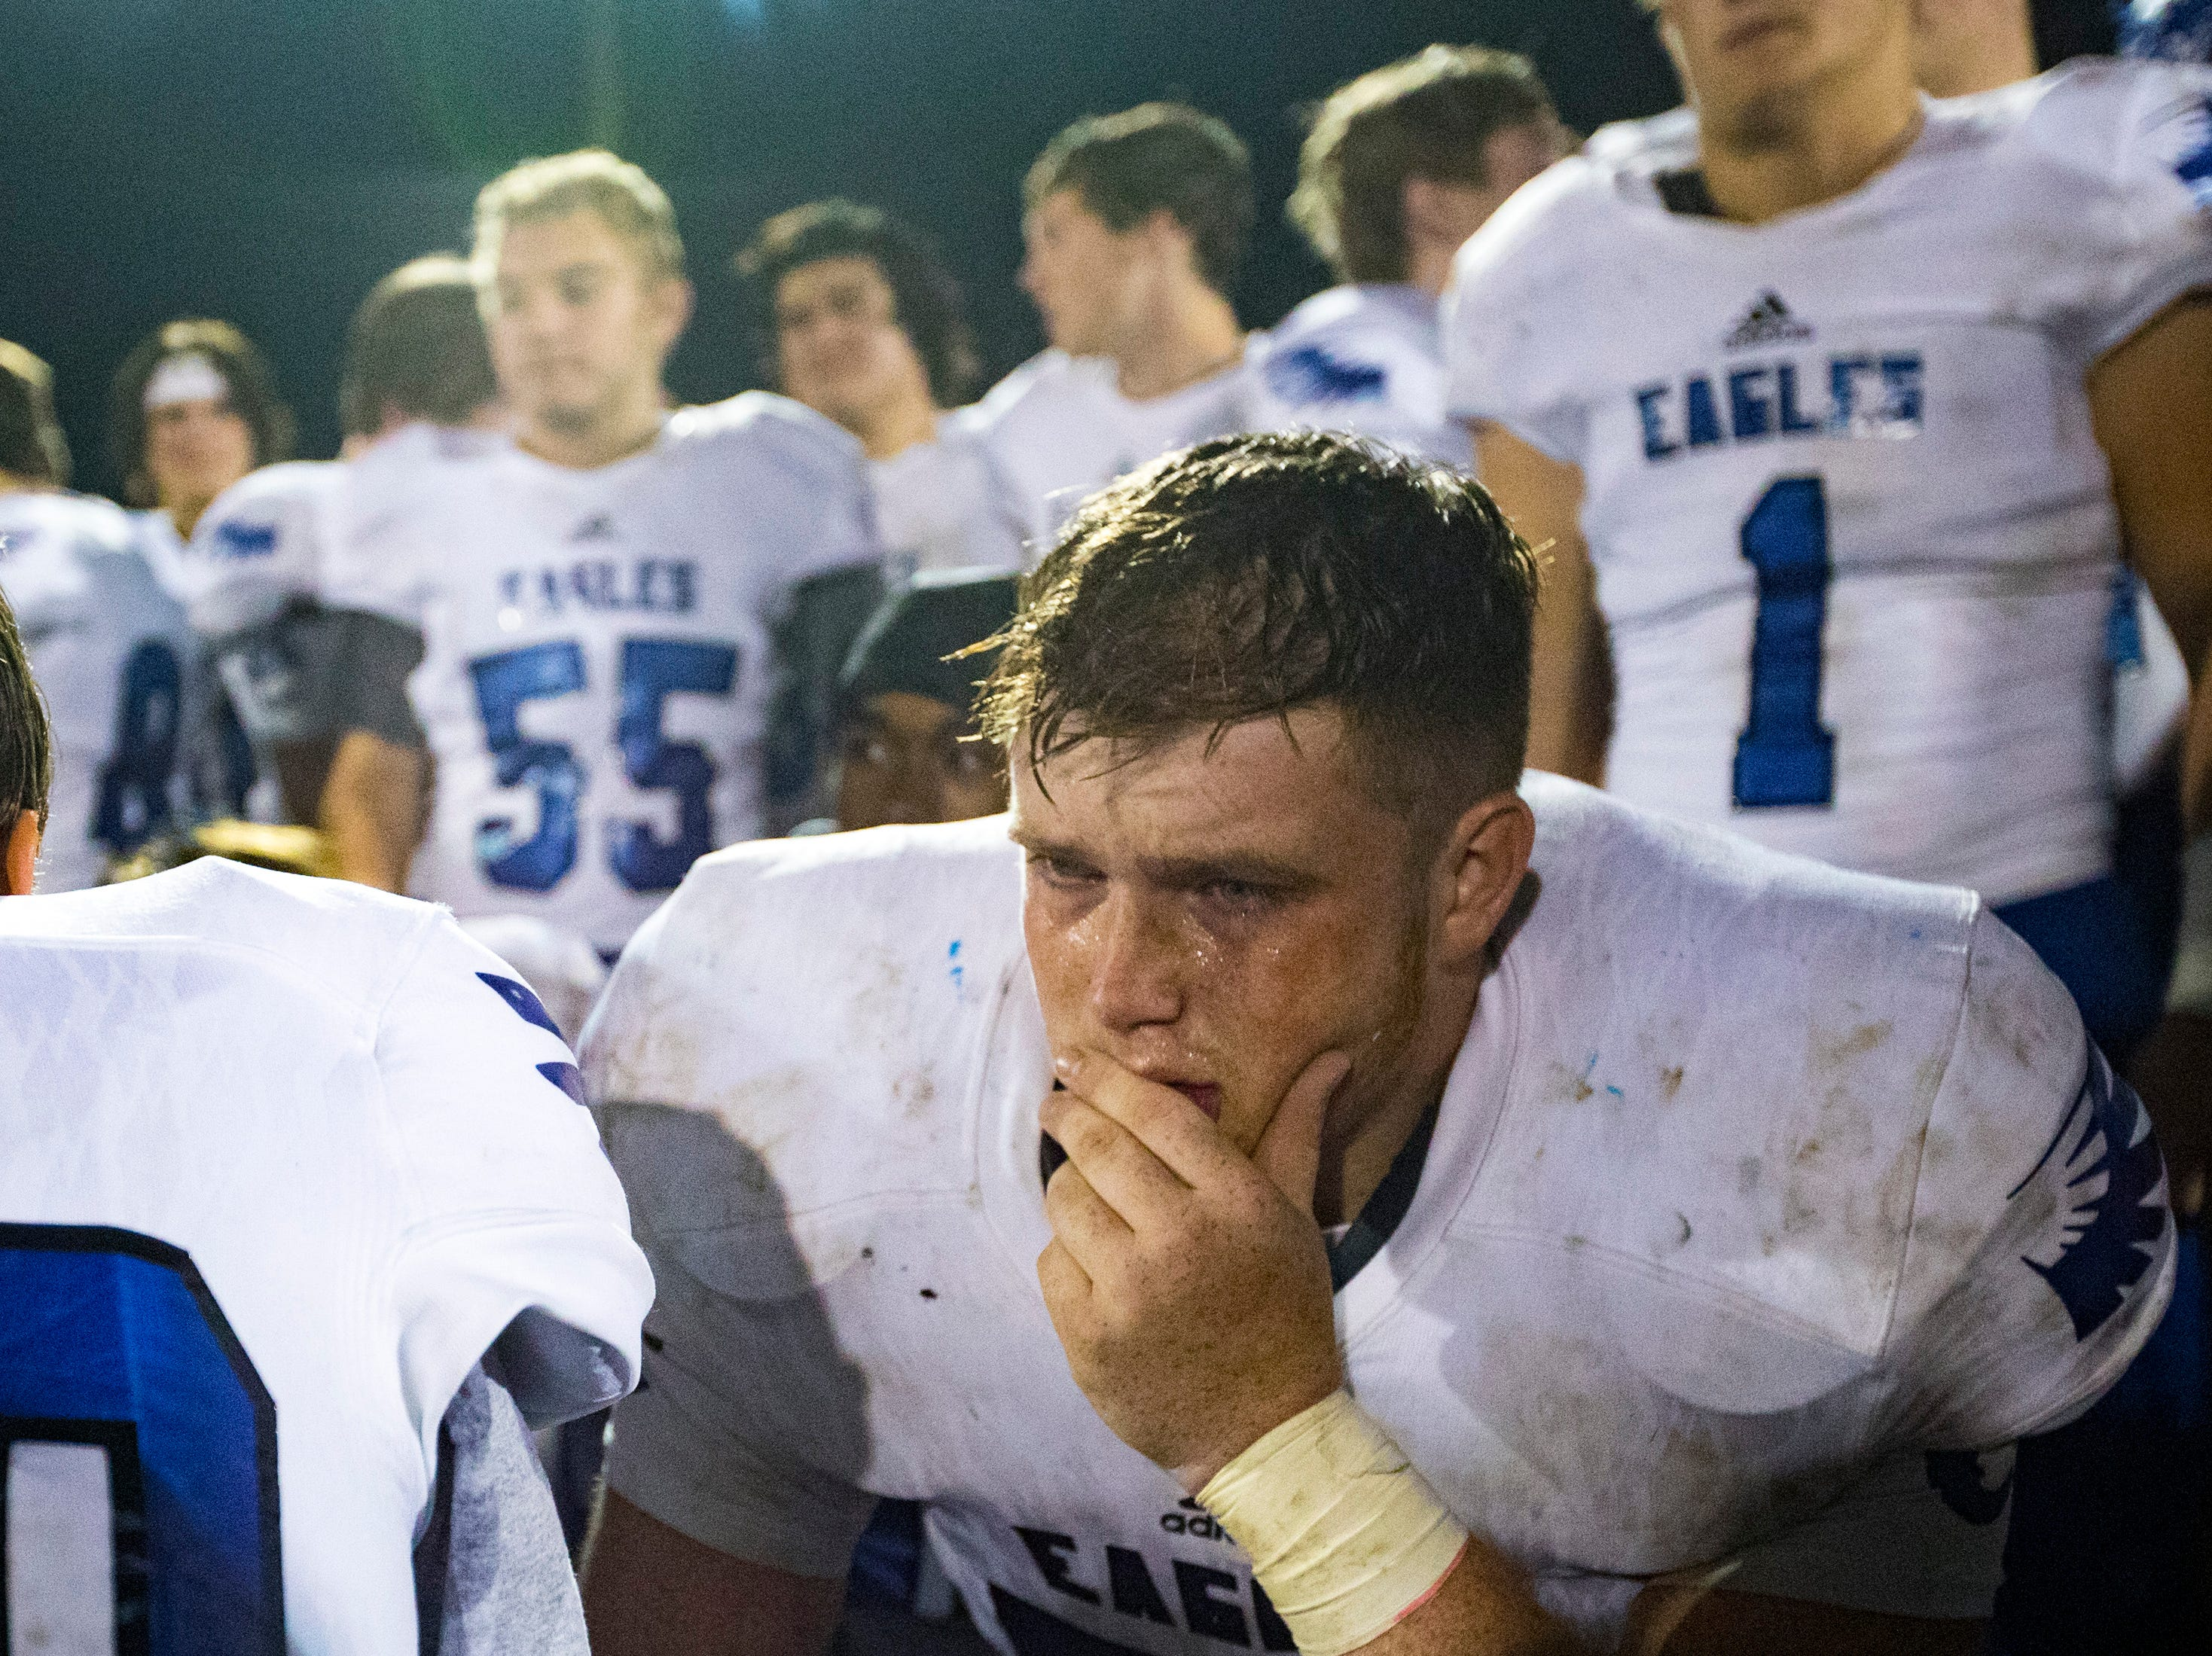 Chester County's Nick Wallis (78) cries after Springfield's game against Chester County at Springfield High School in Springfield on Friday, Nov. 2, 2018.